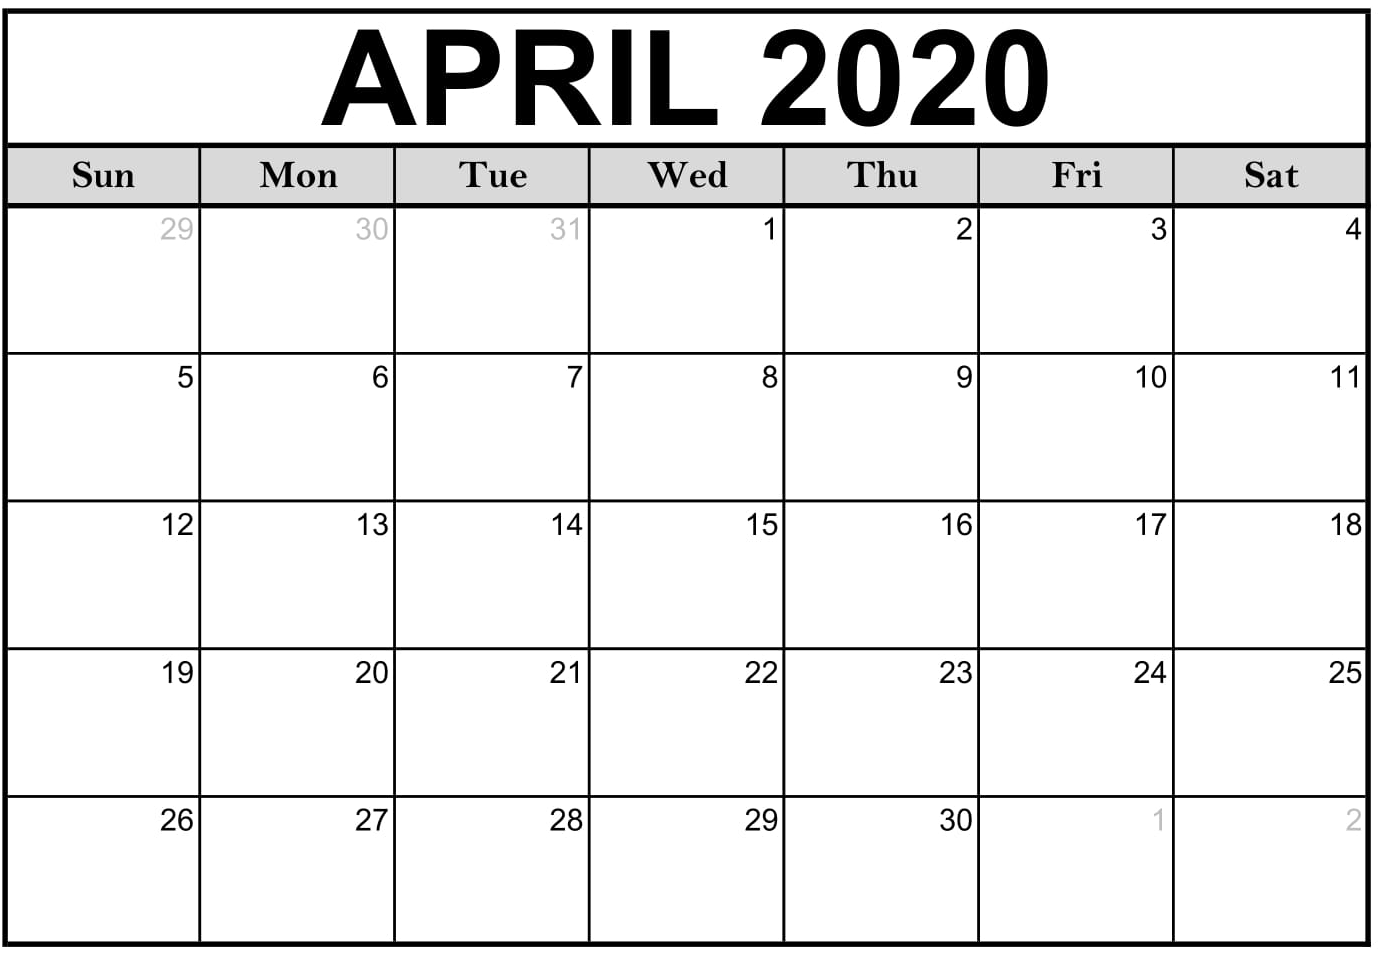 April 2020 Calendar Printable Landscape